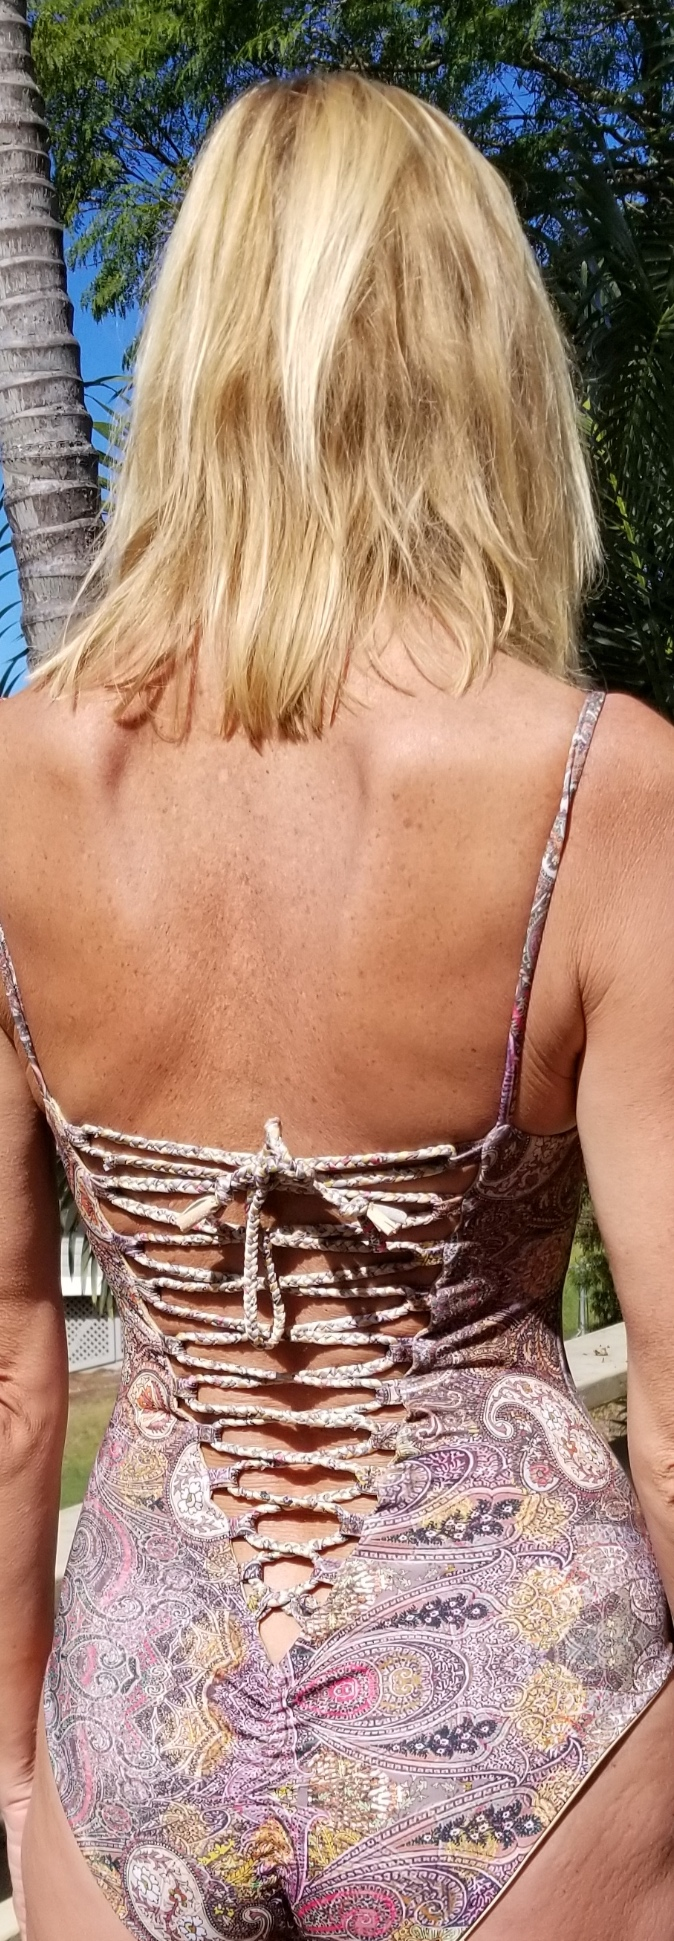 Braided Corset Back!